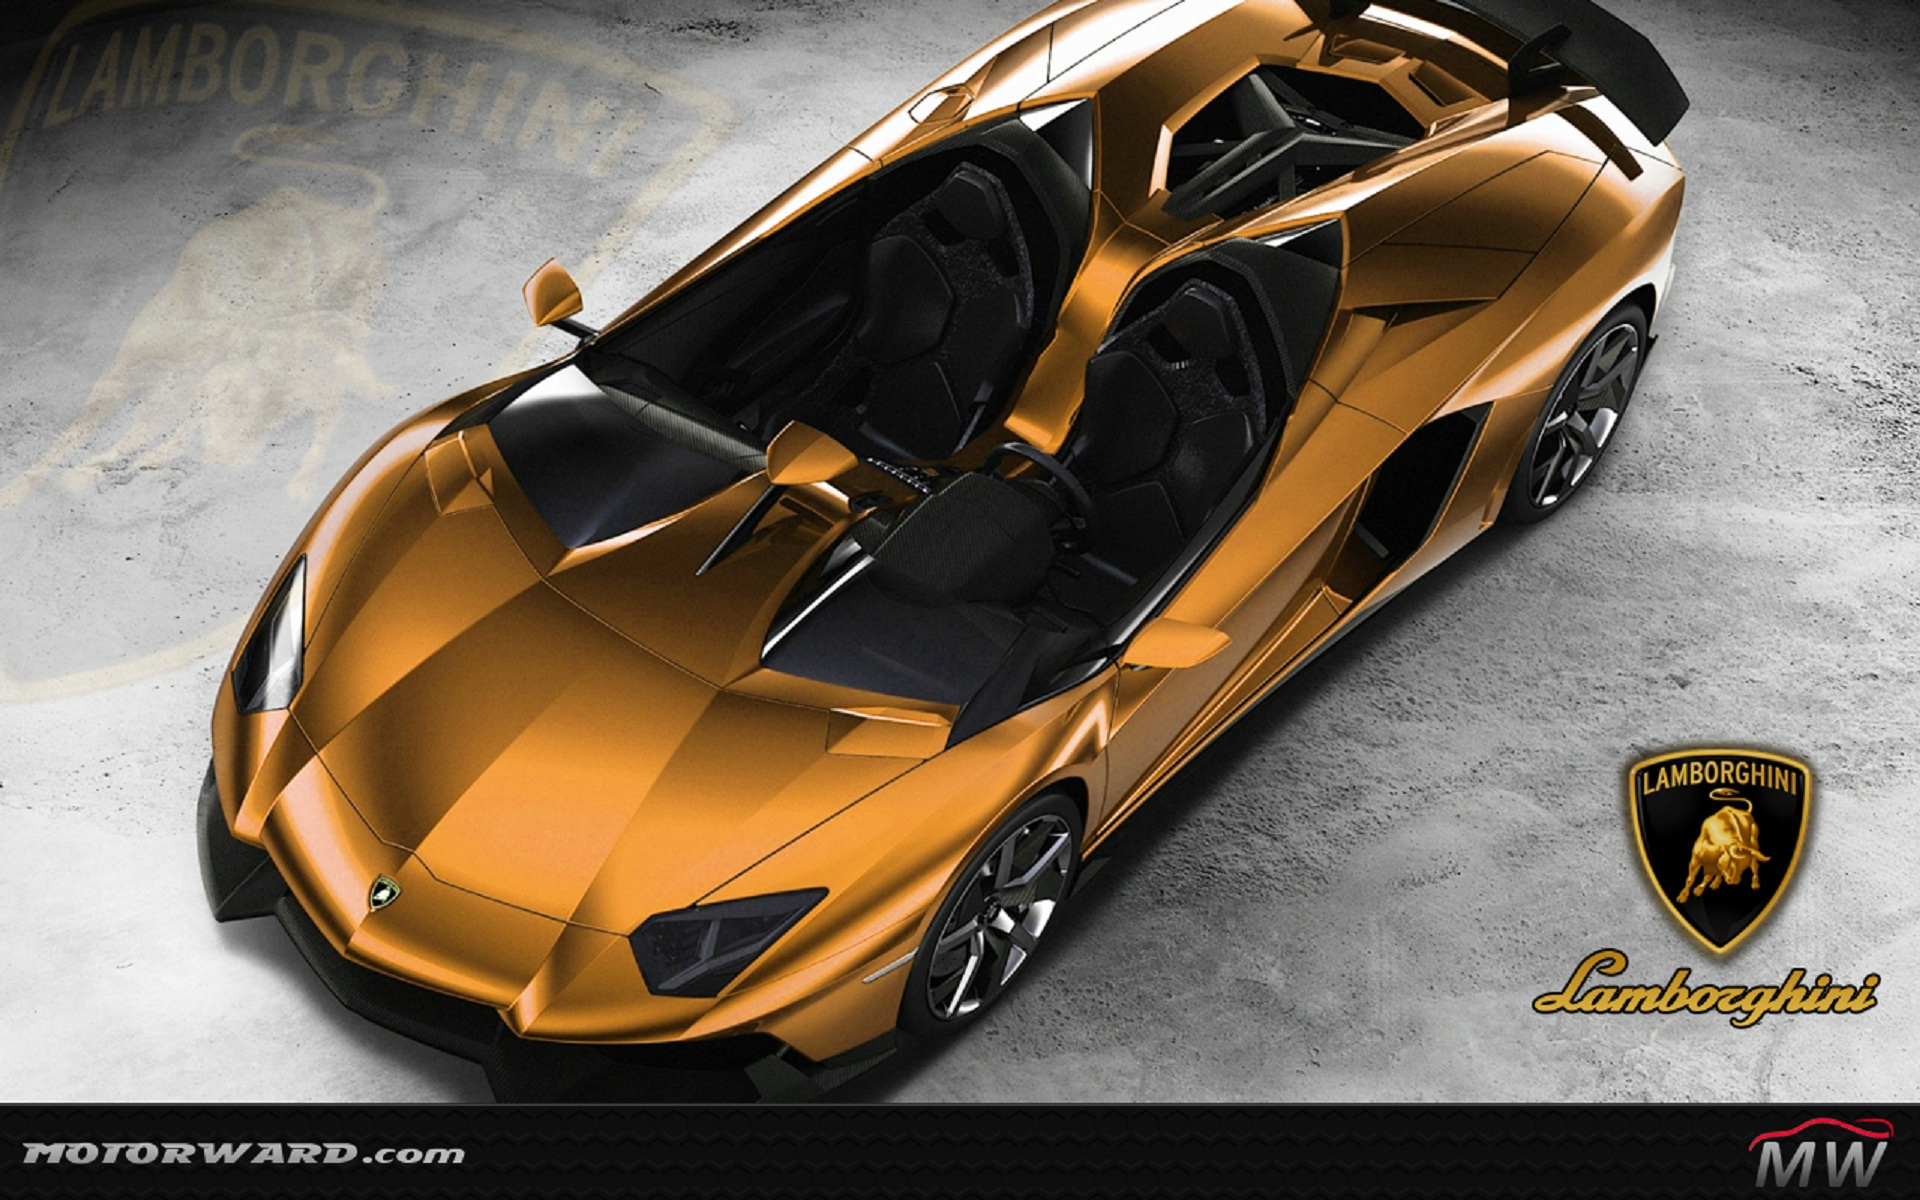 Lamborghini Aventador J Gold wallpaper